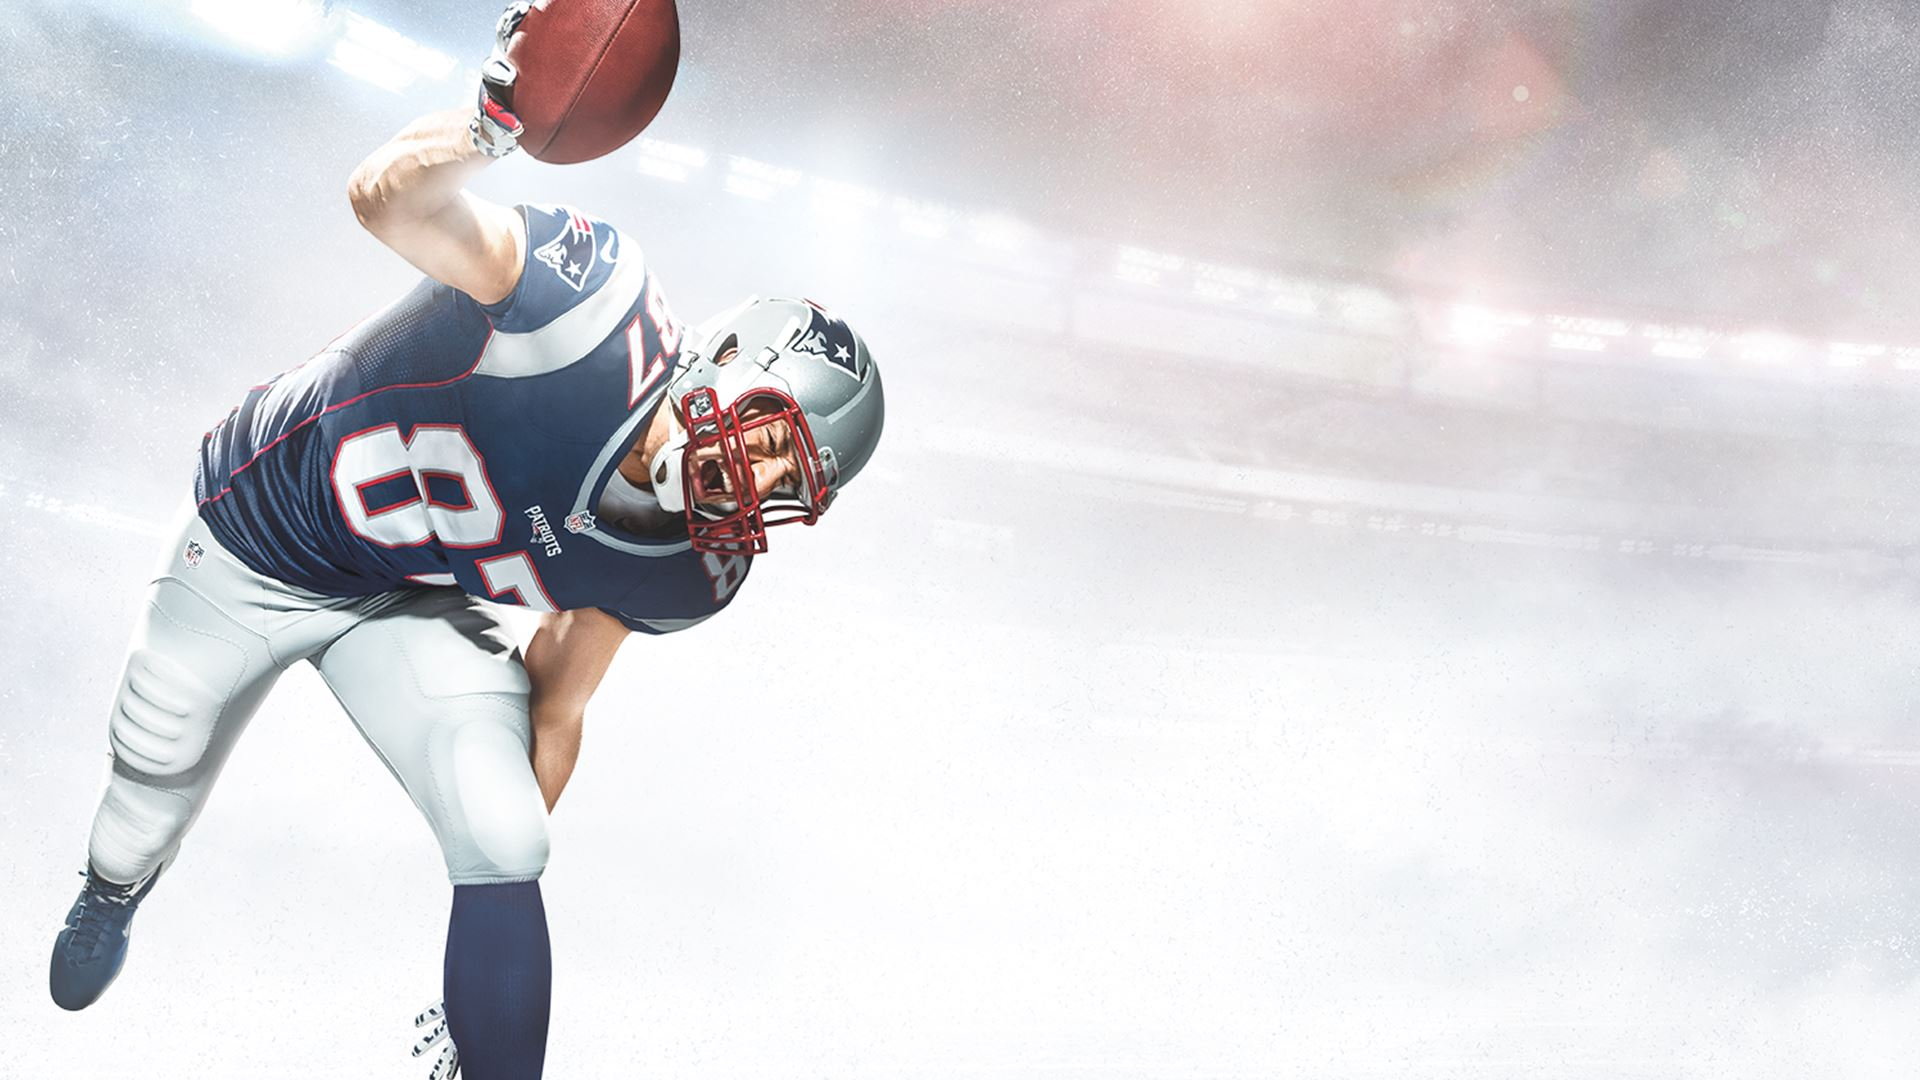 today released the full database of player ratings for Madden NFL 17 ...